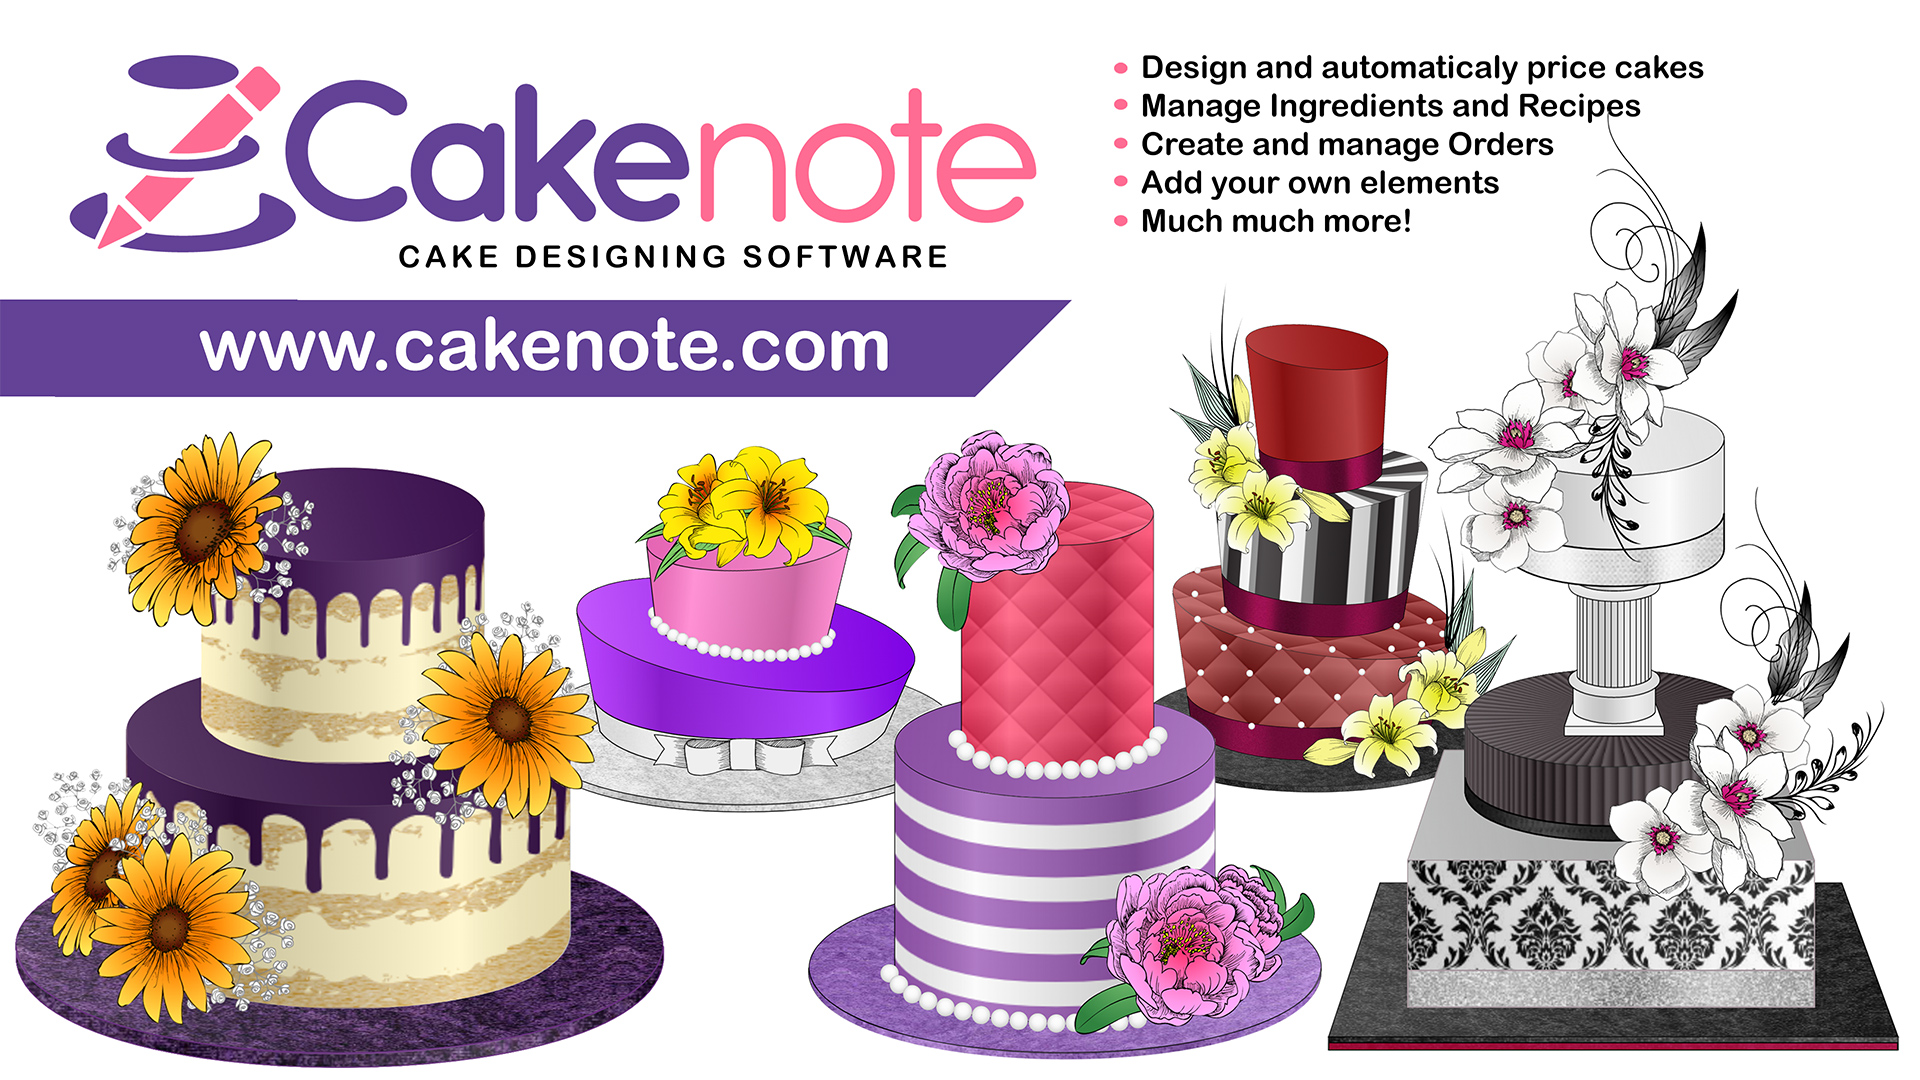 Introducing Cakenote – Cake Designing Software